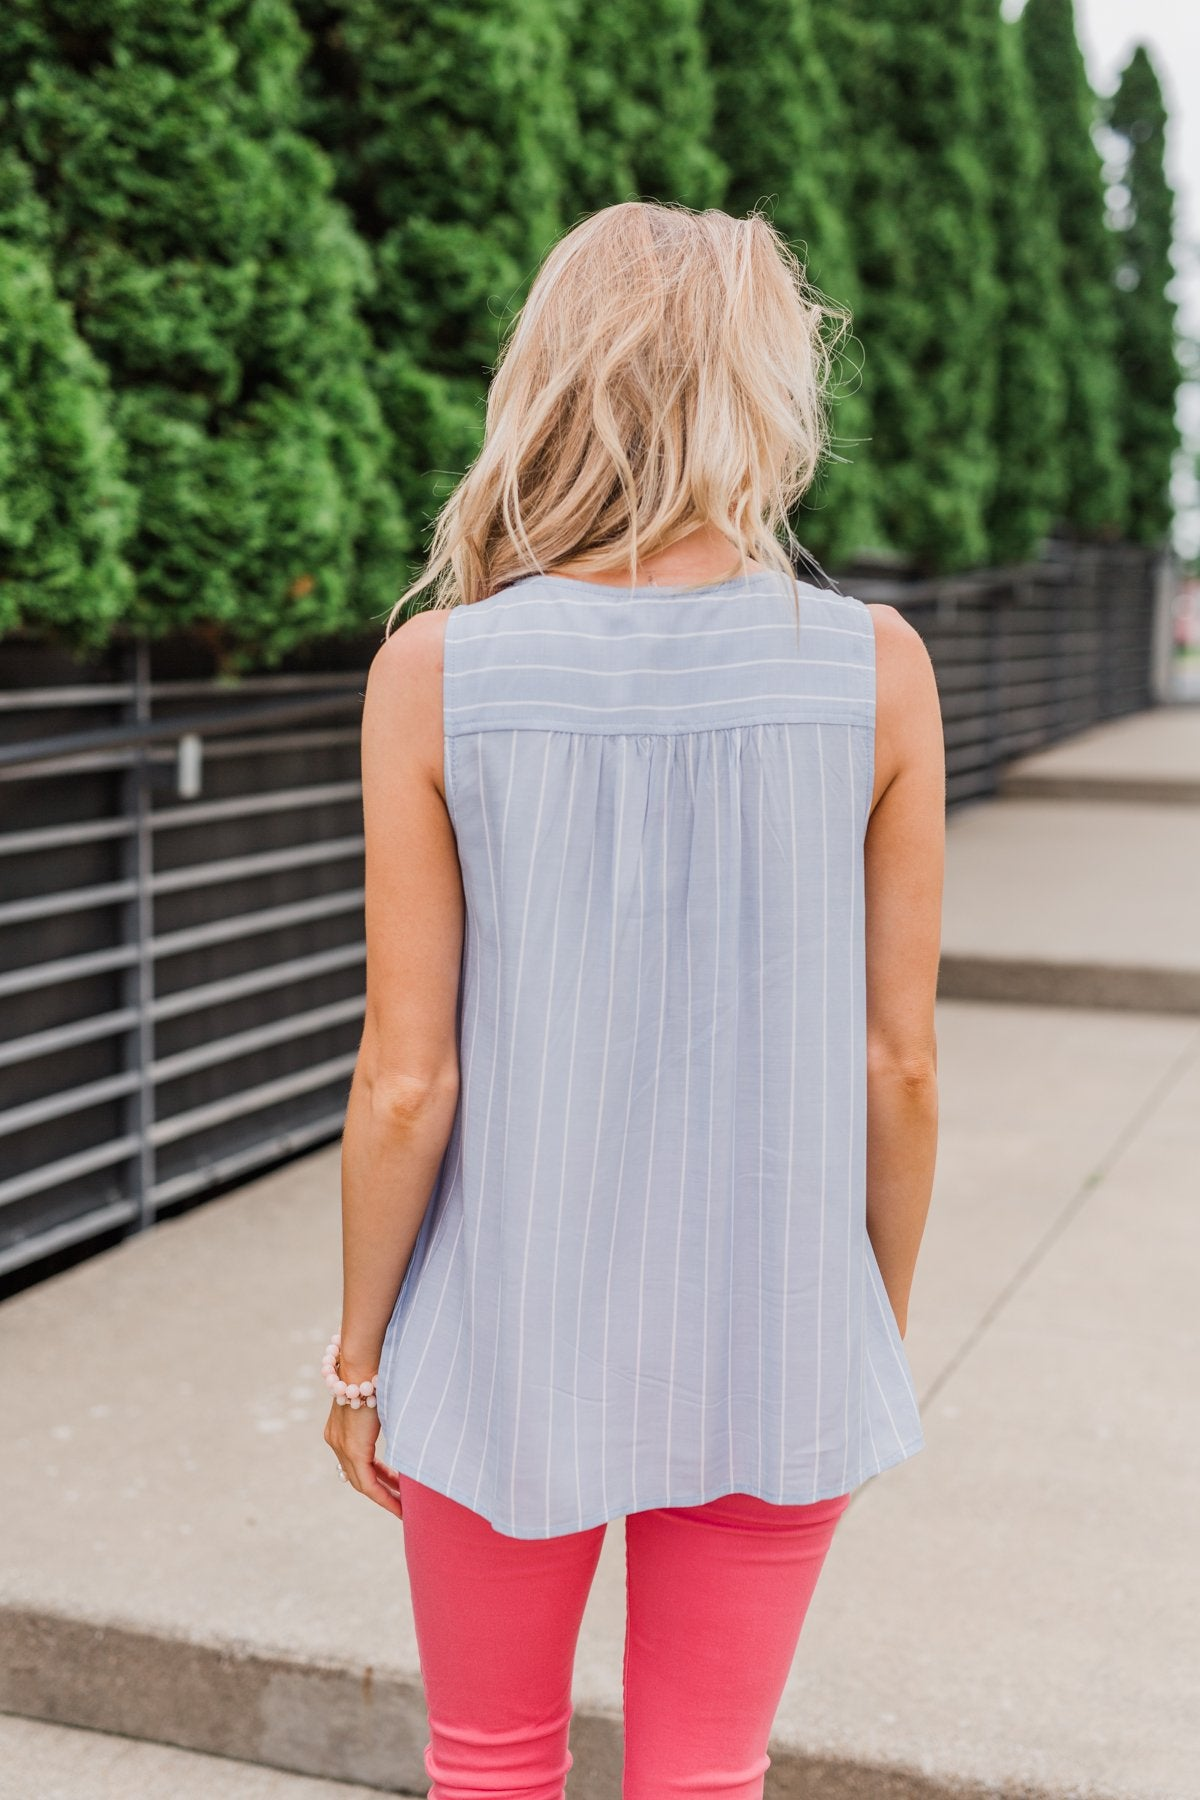 Detailed Embroider & Striped Tank Top- Light Blue